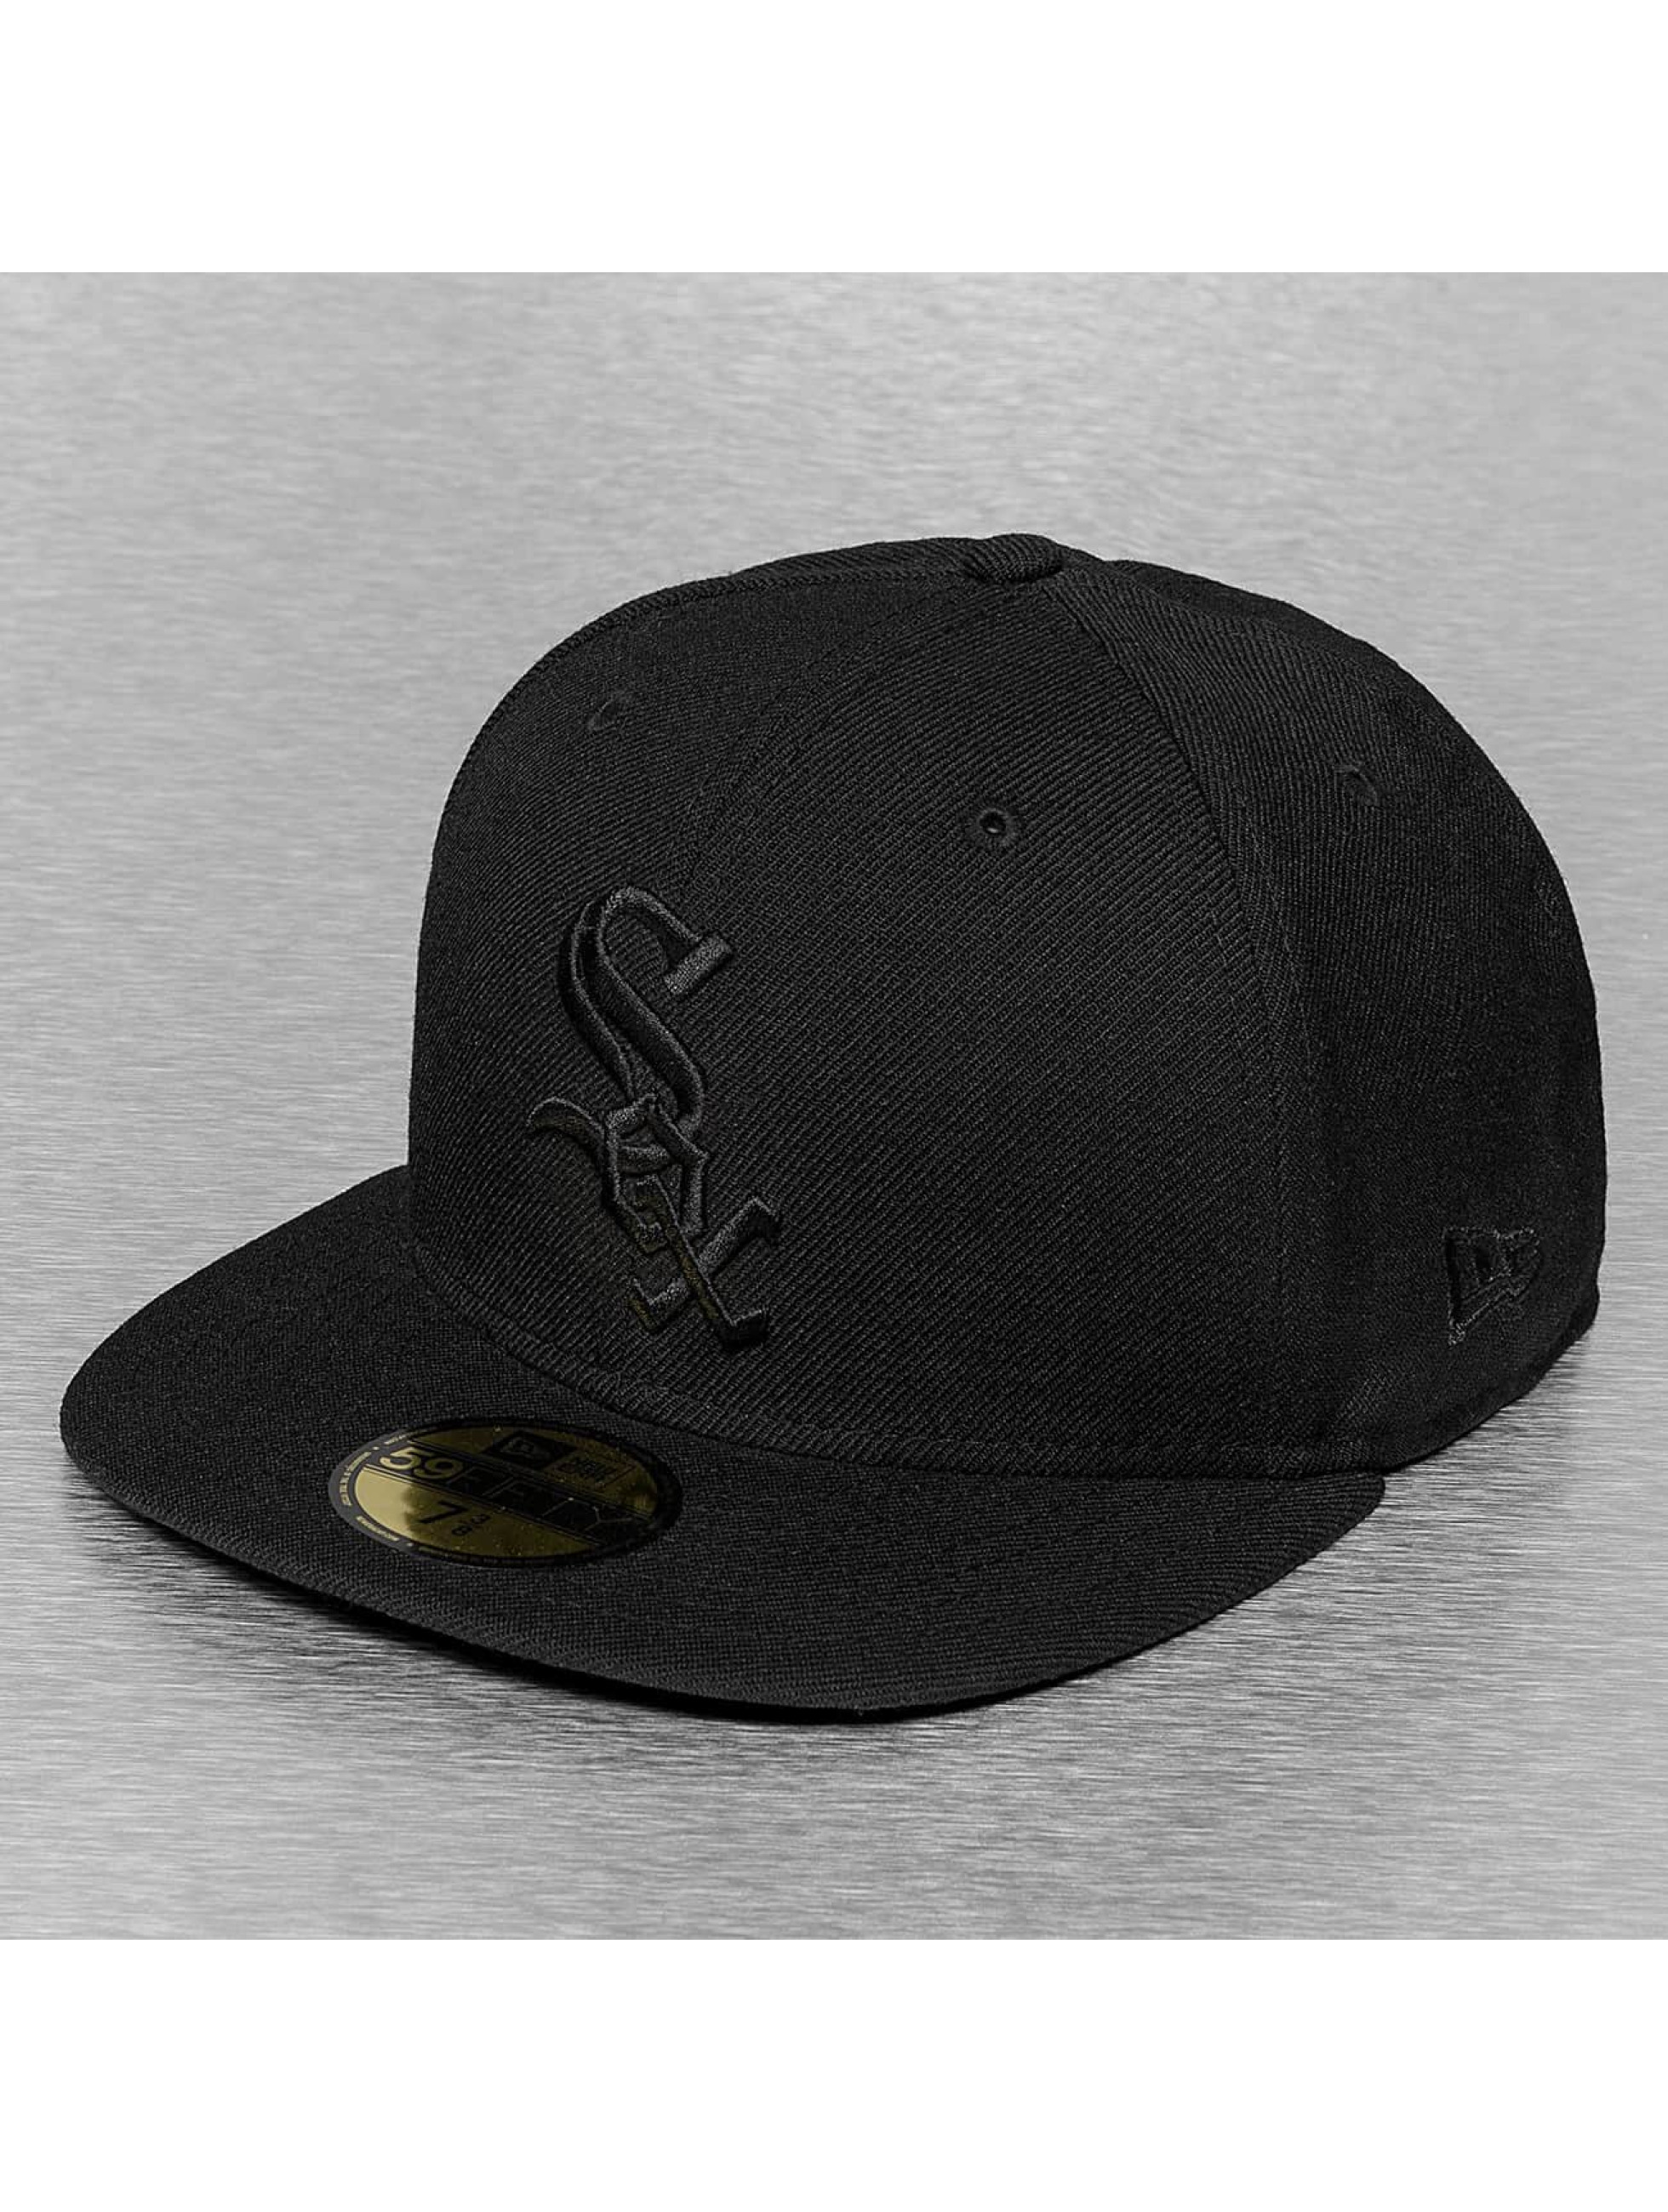 New Era Fitted Cap Black On Black Chicago White Sox schwarz